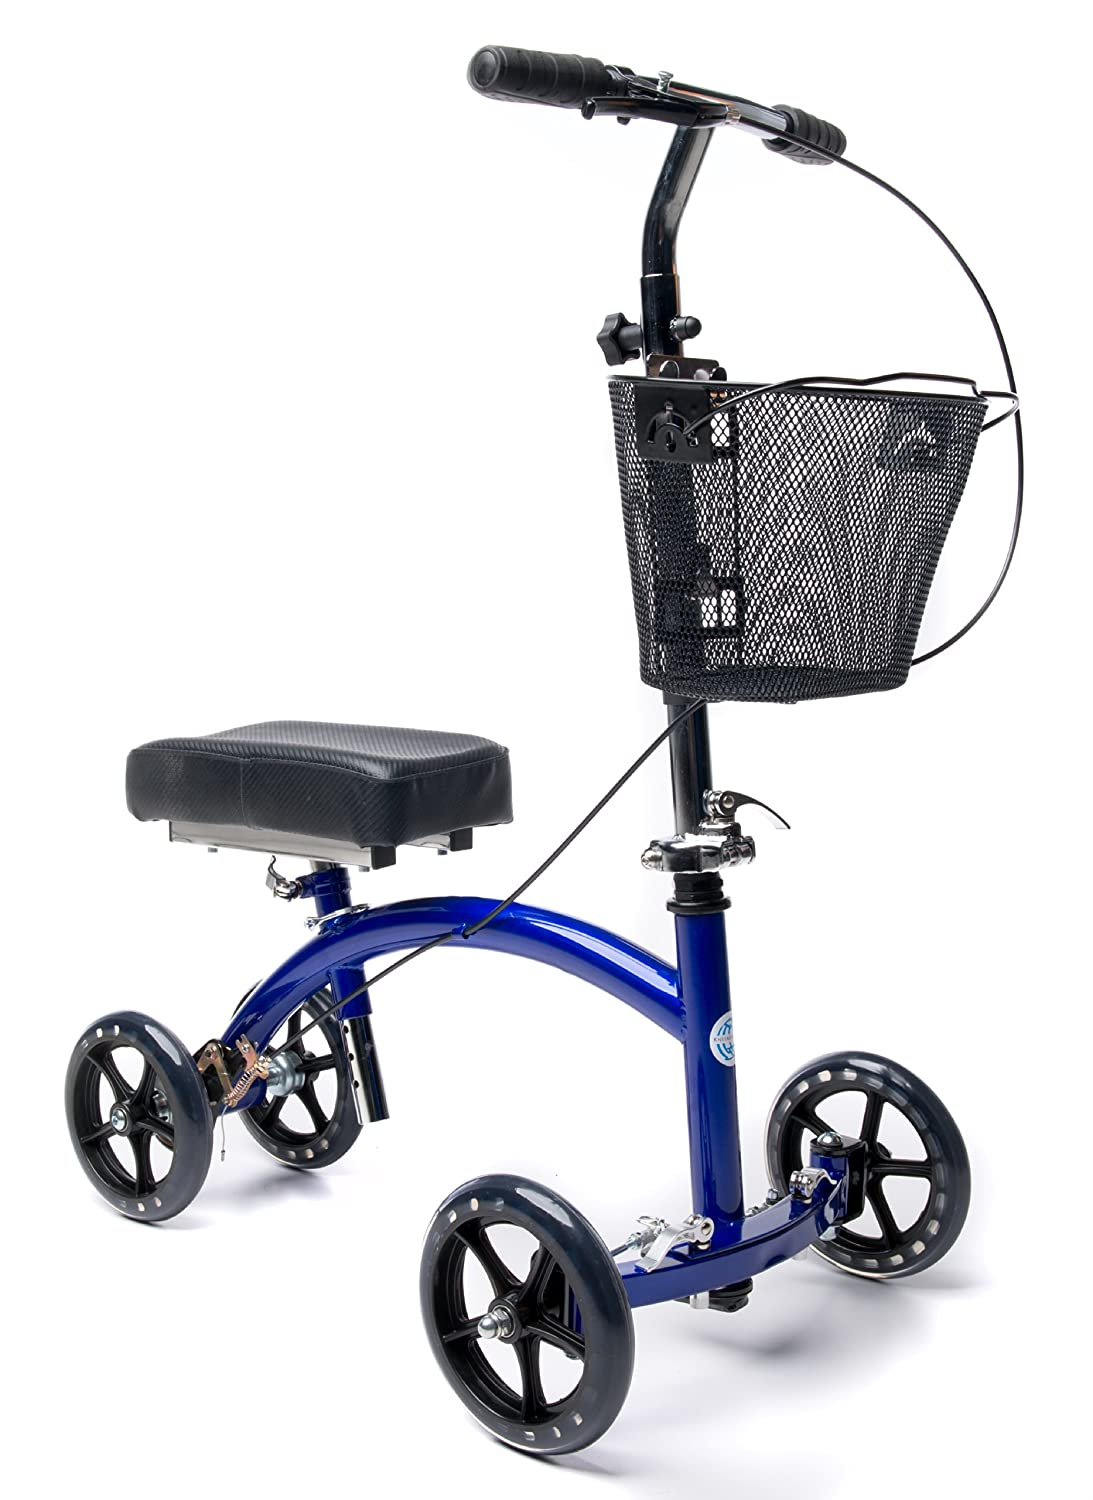 KneeRover Deluxe Steerable Knee Cycle Knee WalkerScooter Crutch Alternative in Blue